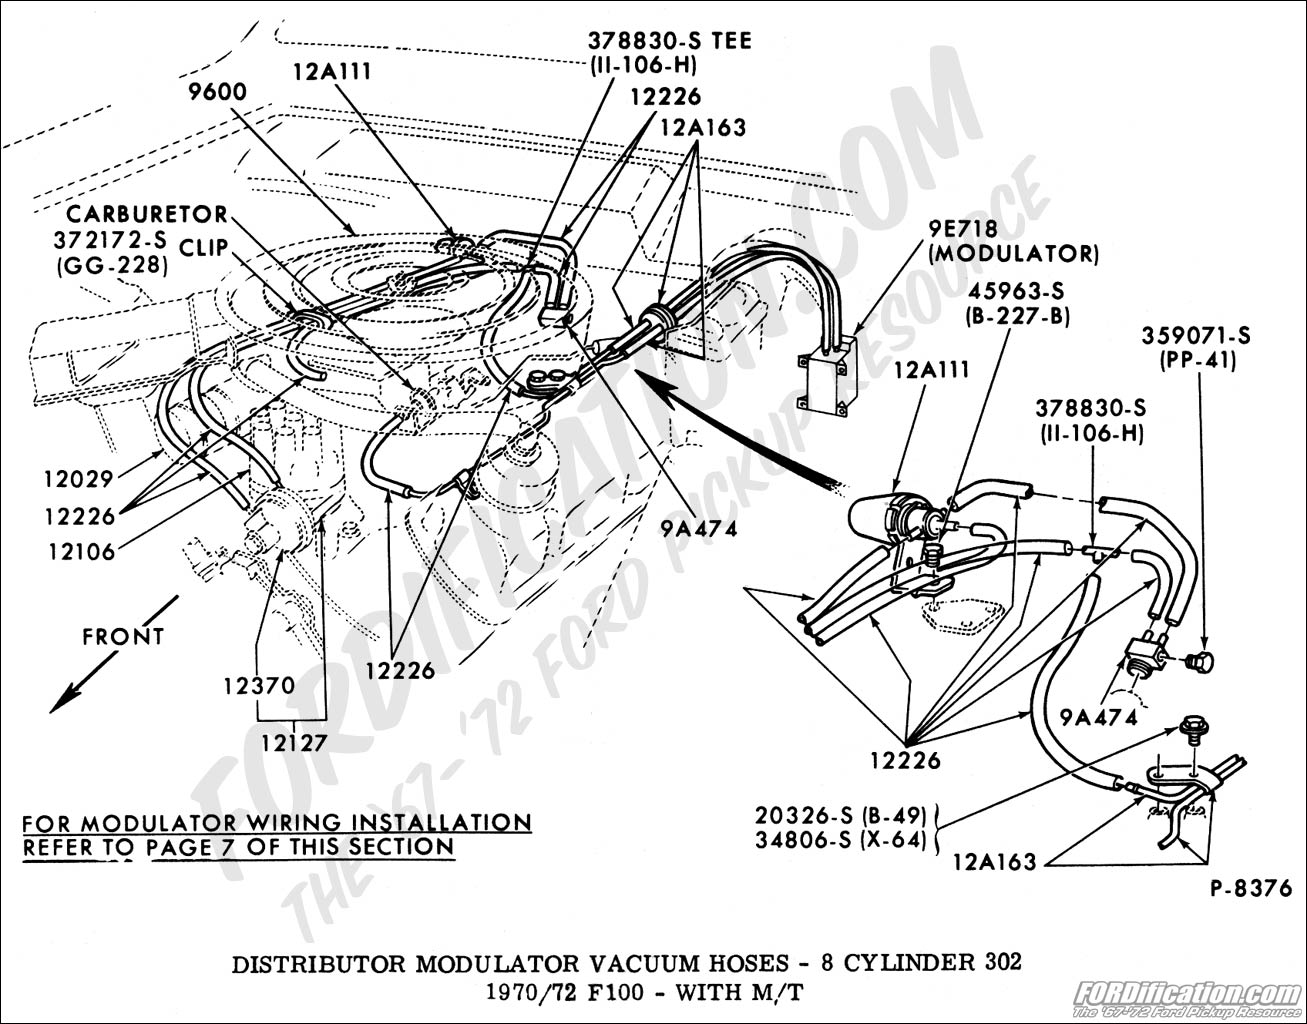 6 Cylinder Ford Industrial Engine Wiring Diagram